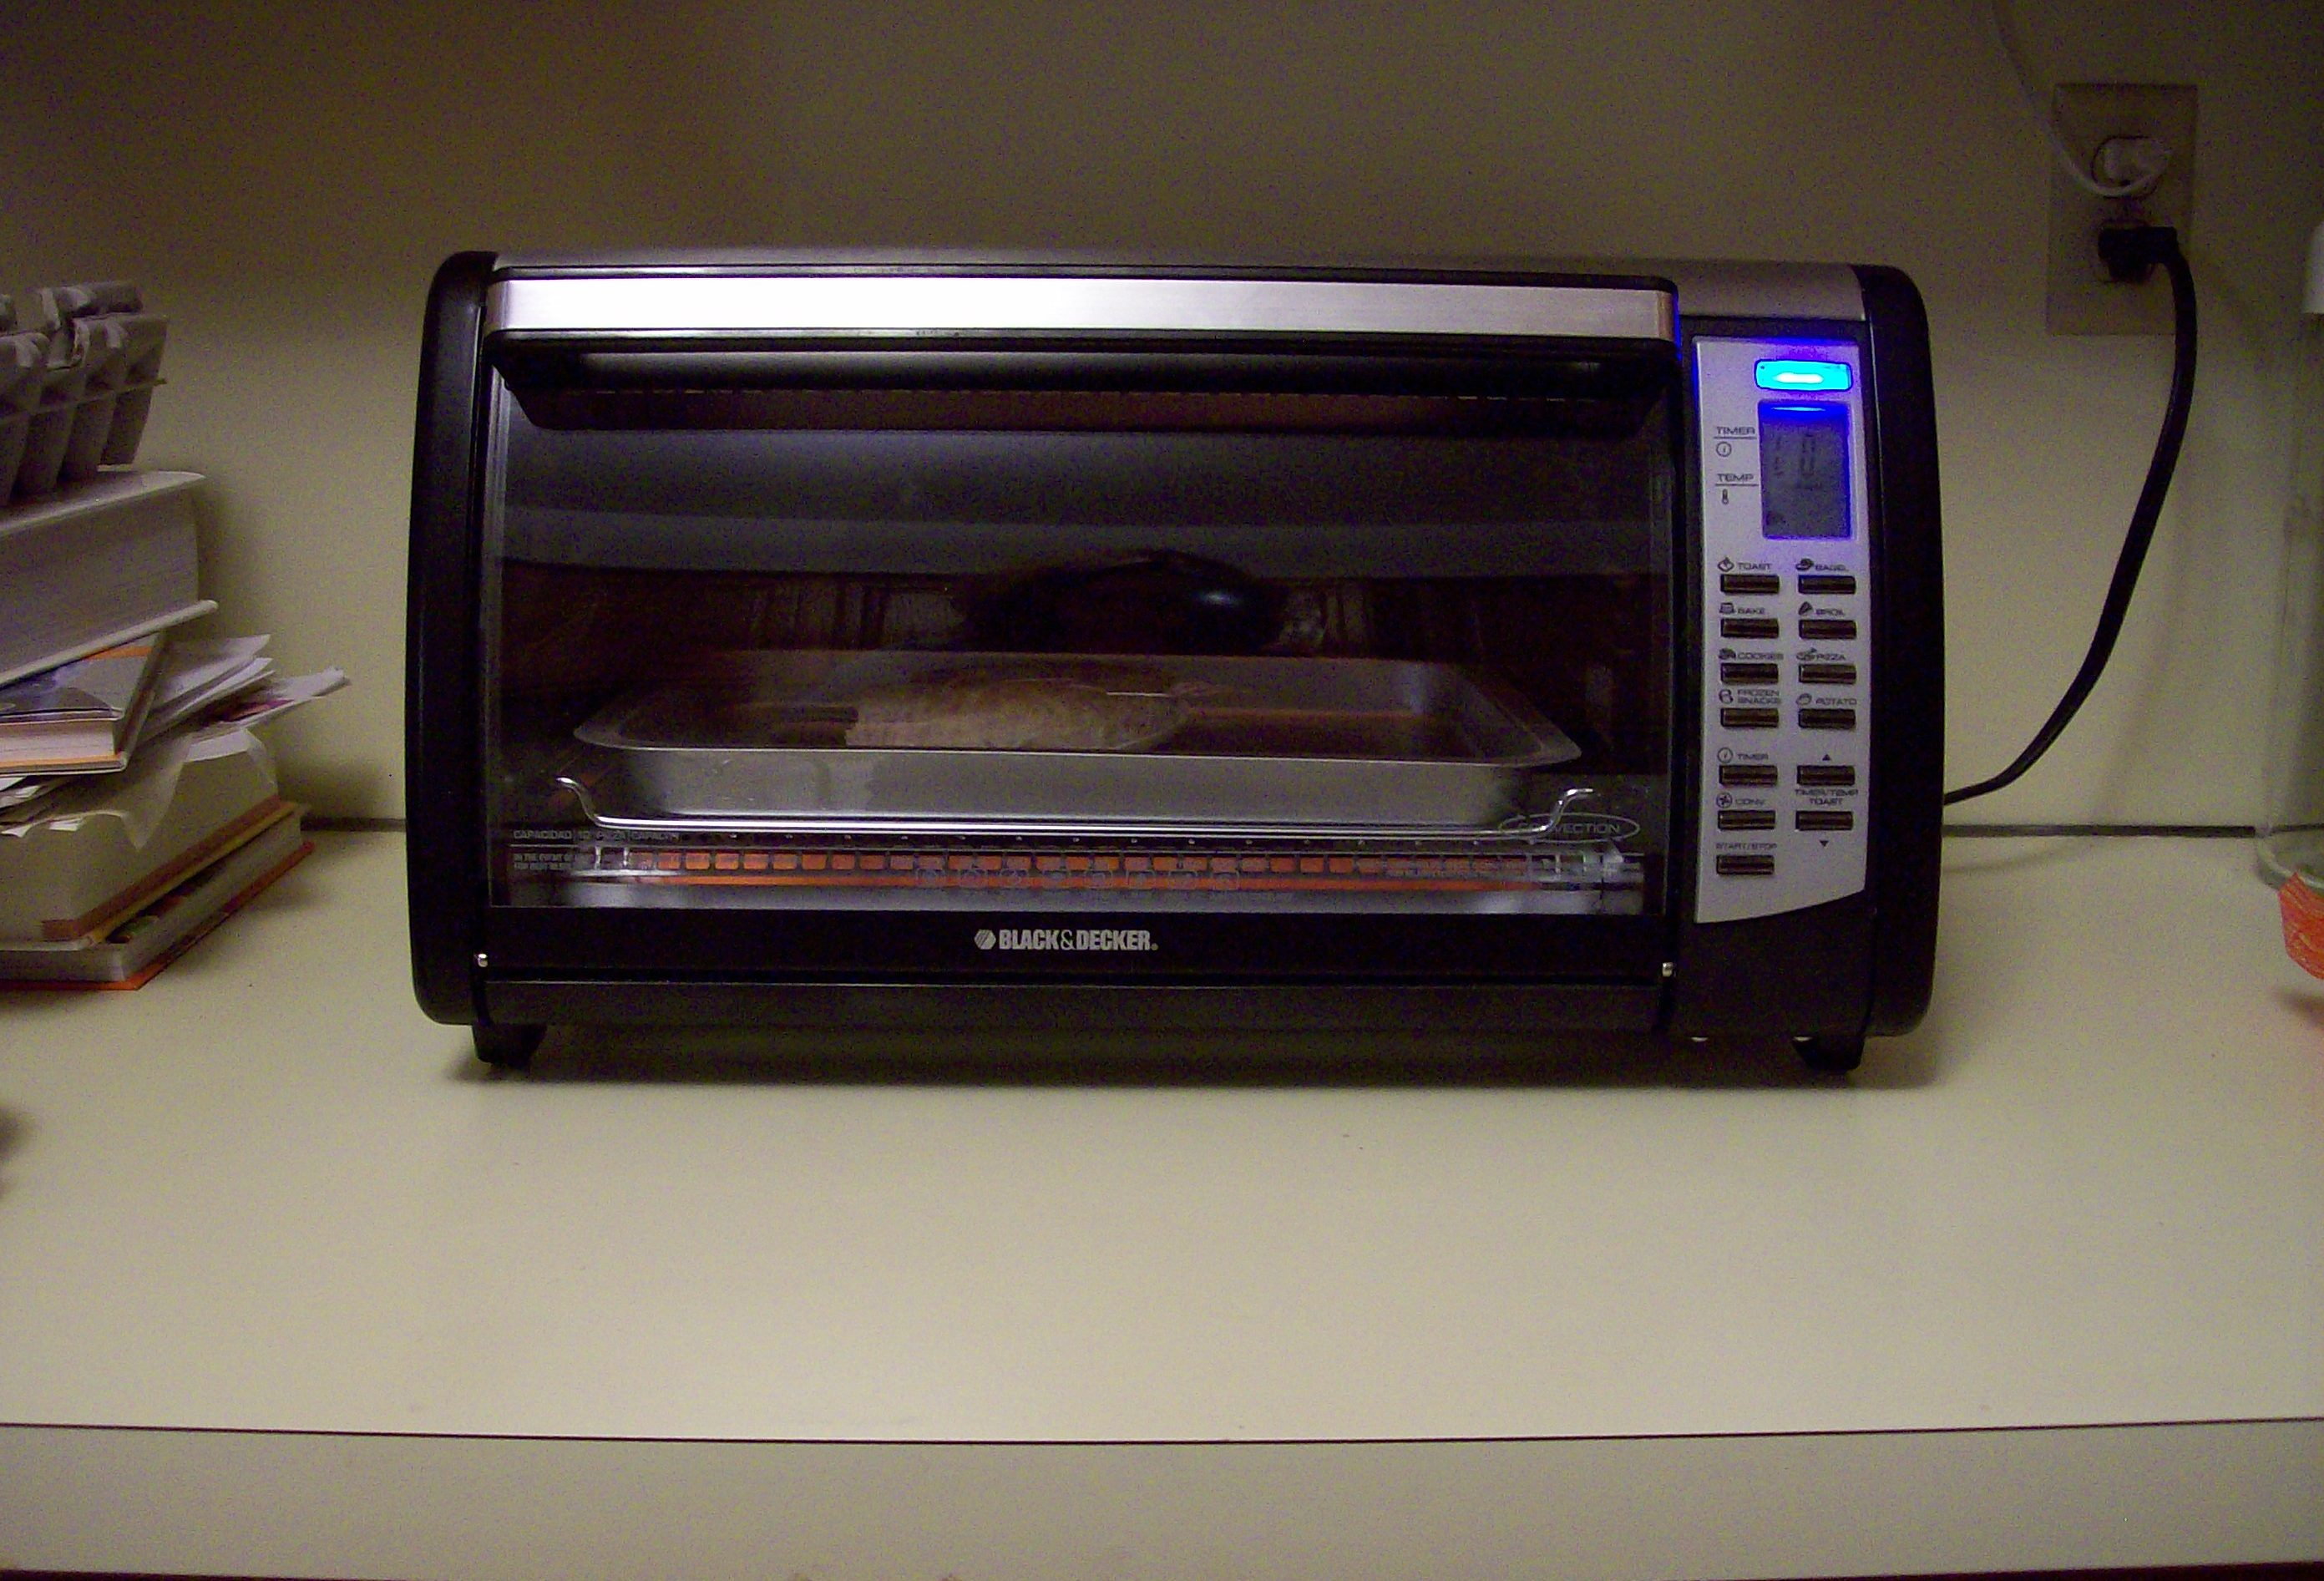 black__decker_toaster_oven